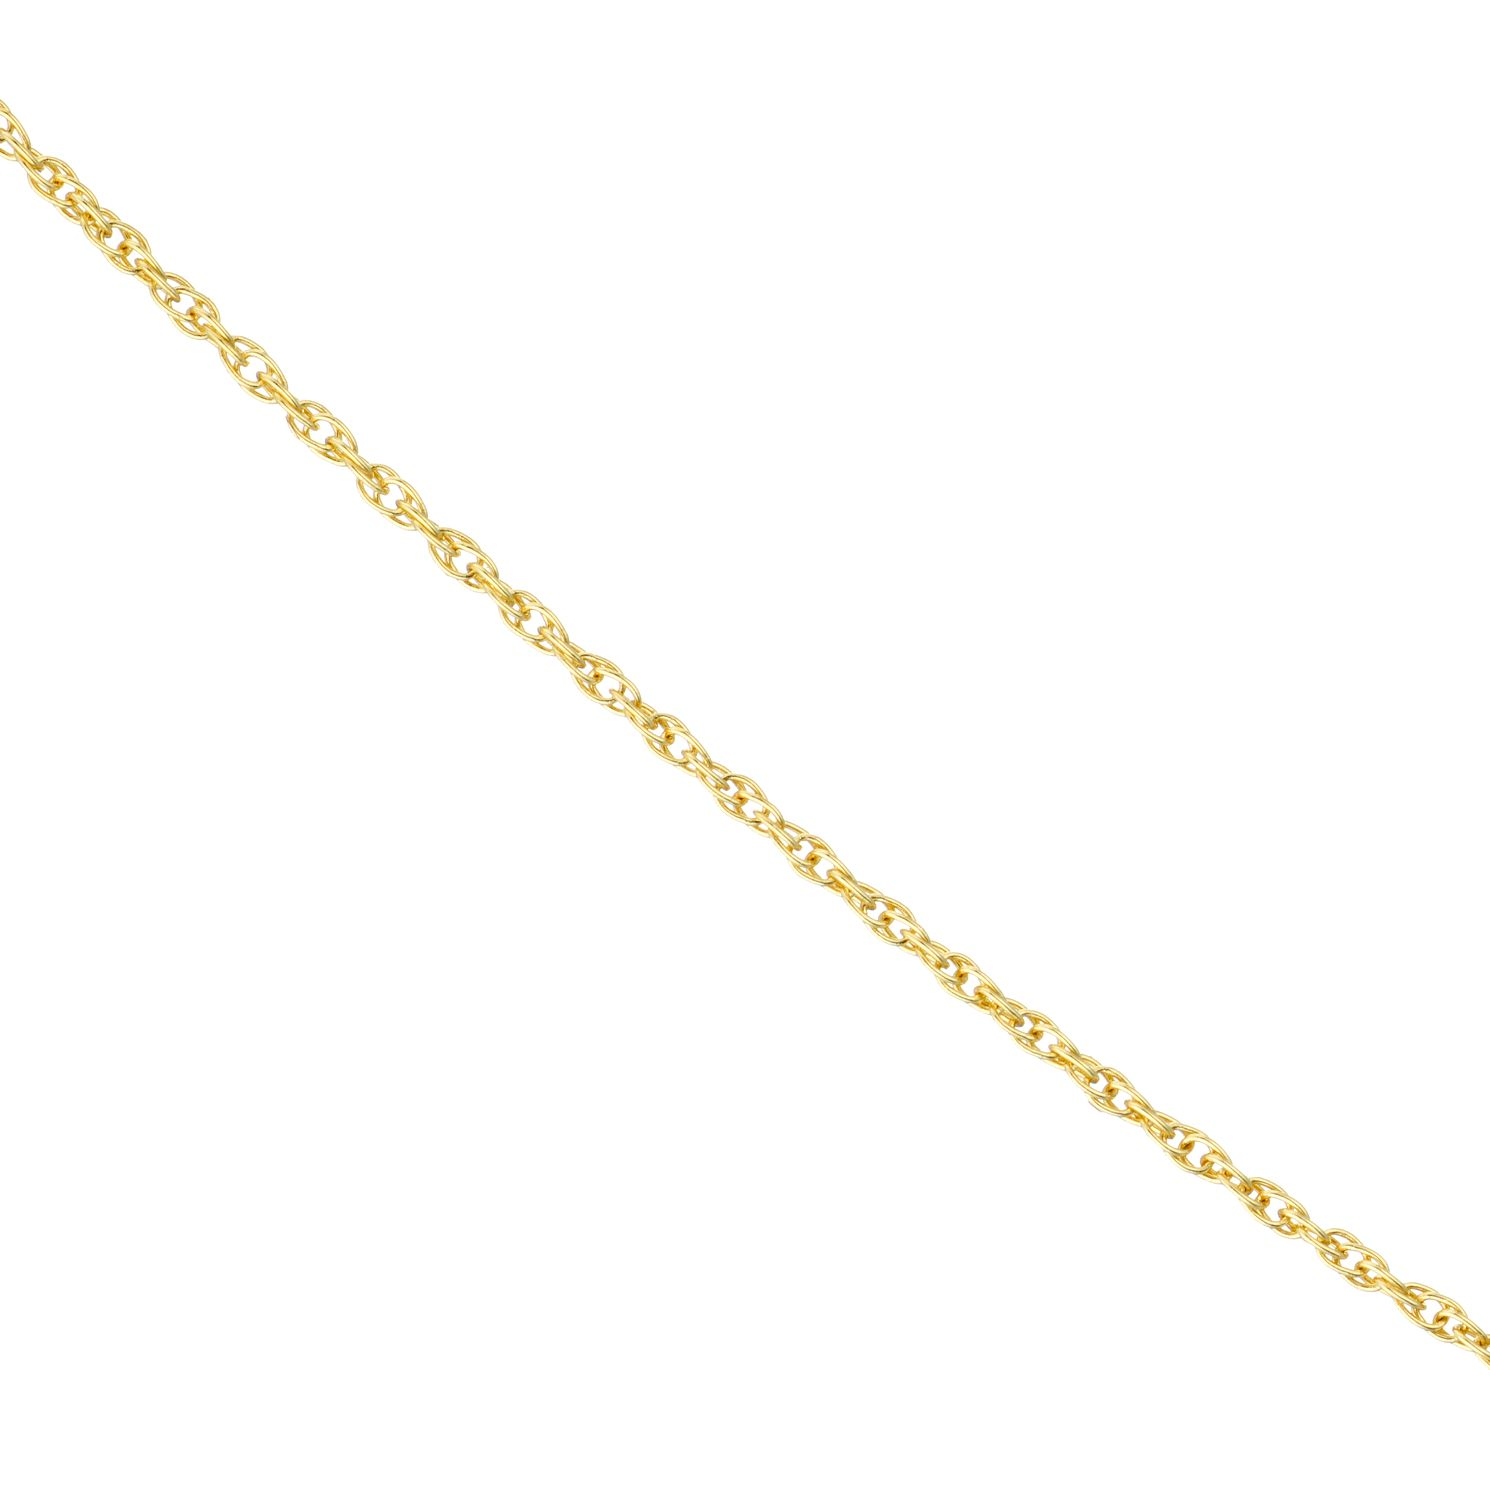 18ct Yellow Gold 18 Inch Prince of Wales Chain - Product number 4681827